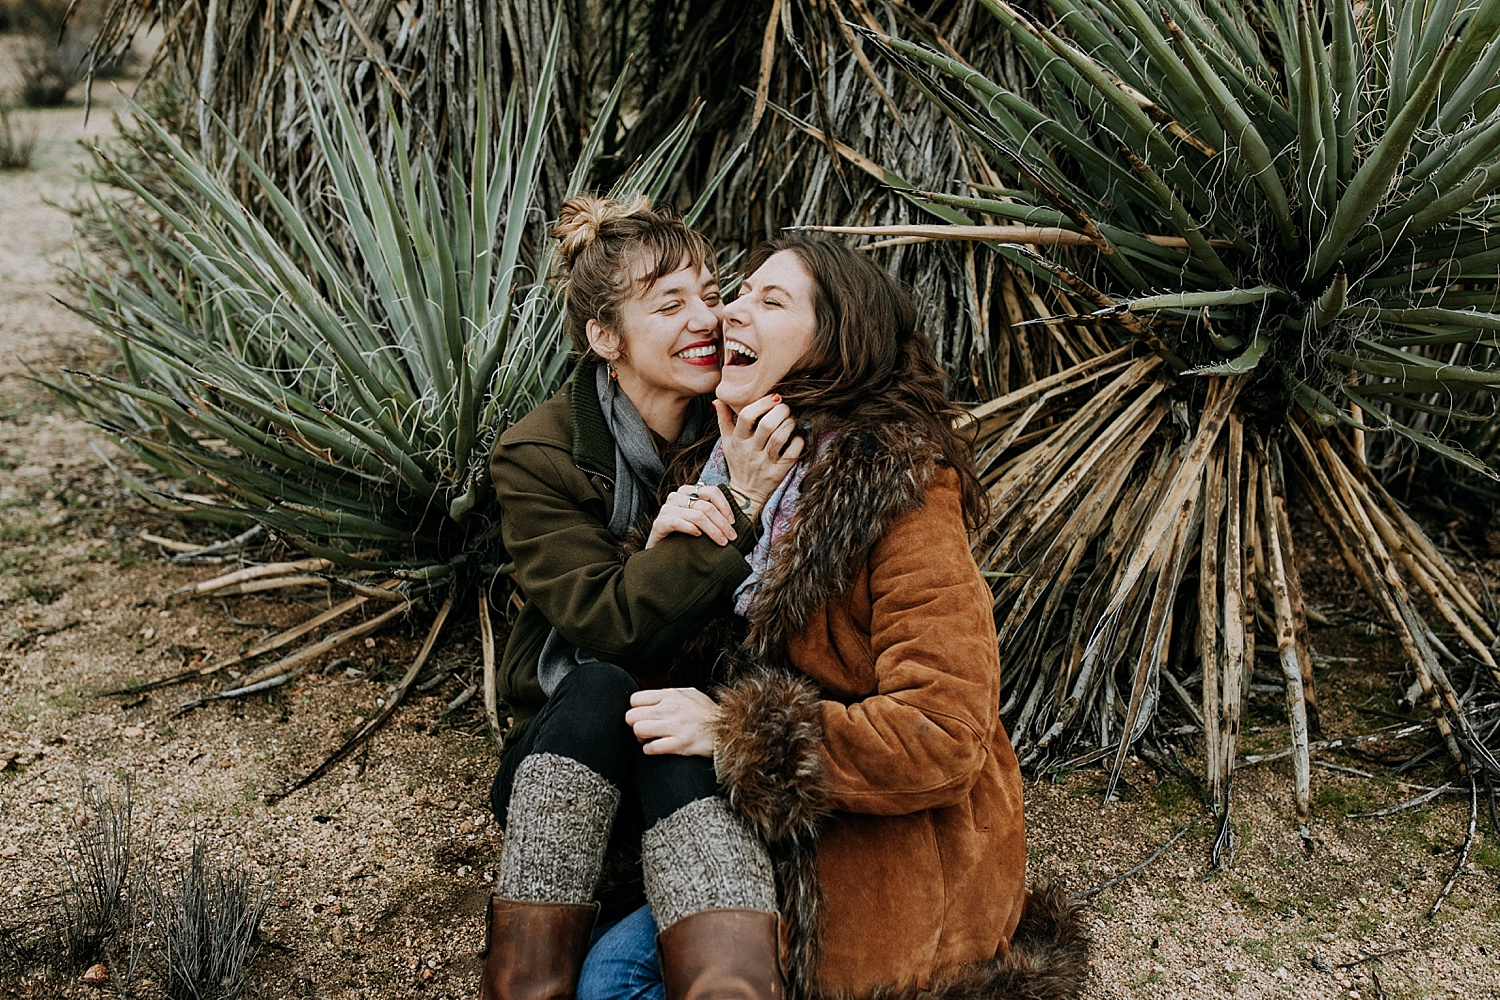 couple cuddling and sitting in front of greenery in Joshua Tree, California photography